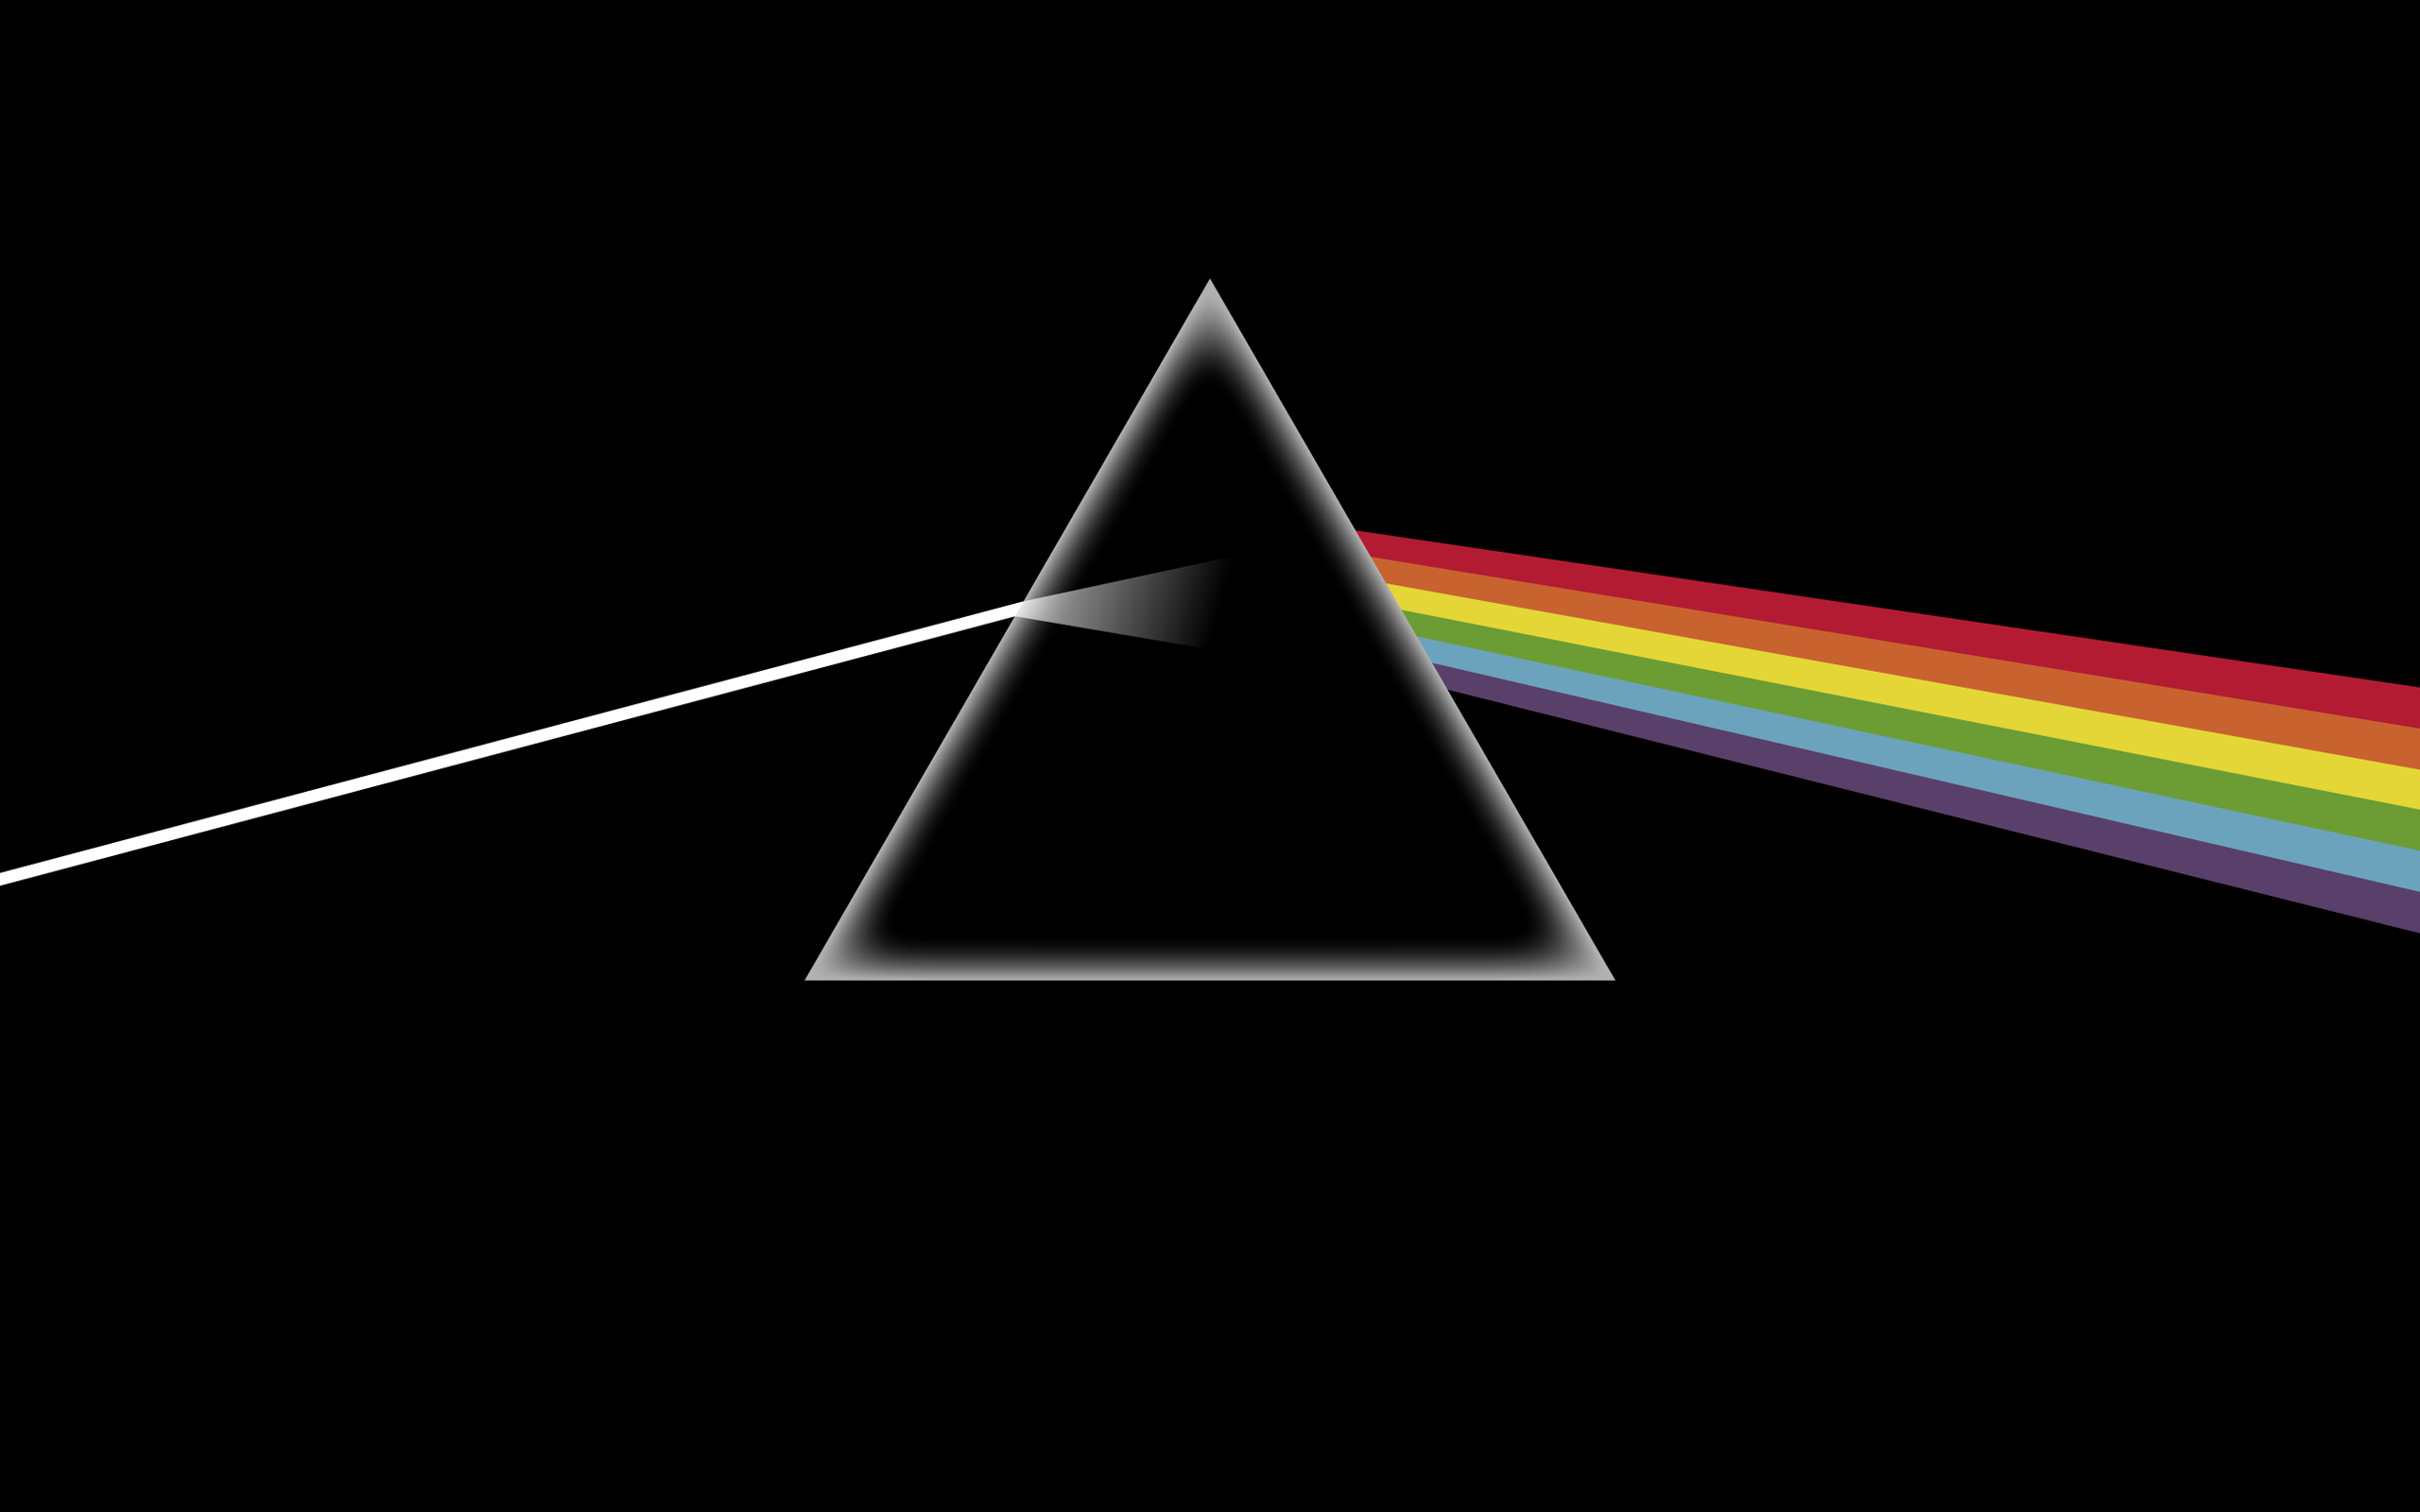 Dark Side Of The Moon Desktop Wallpaper